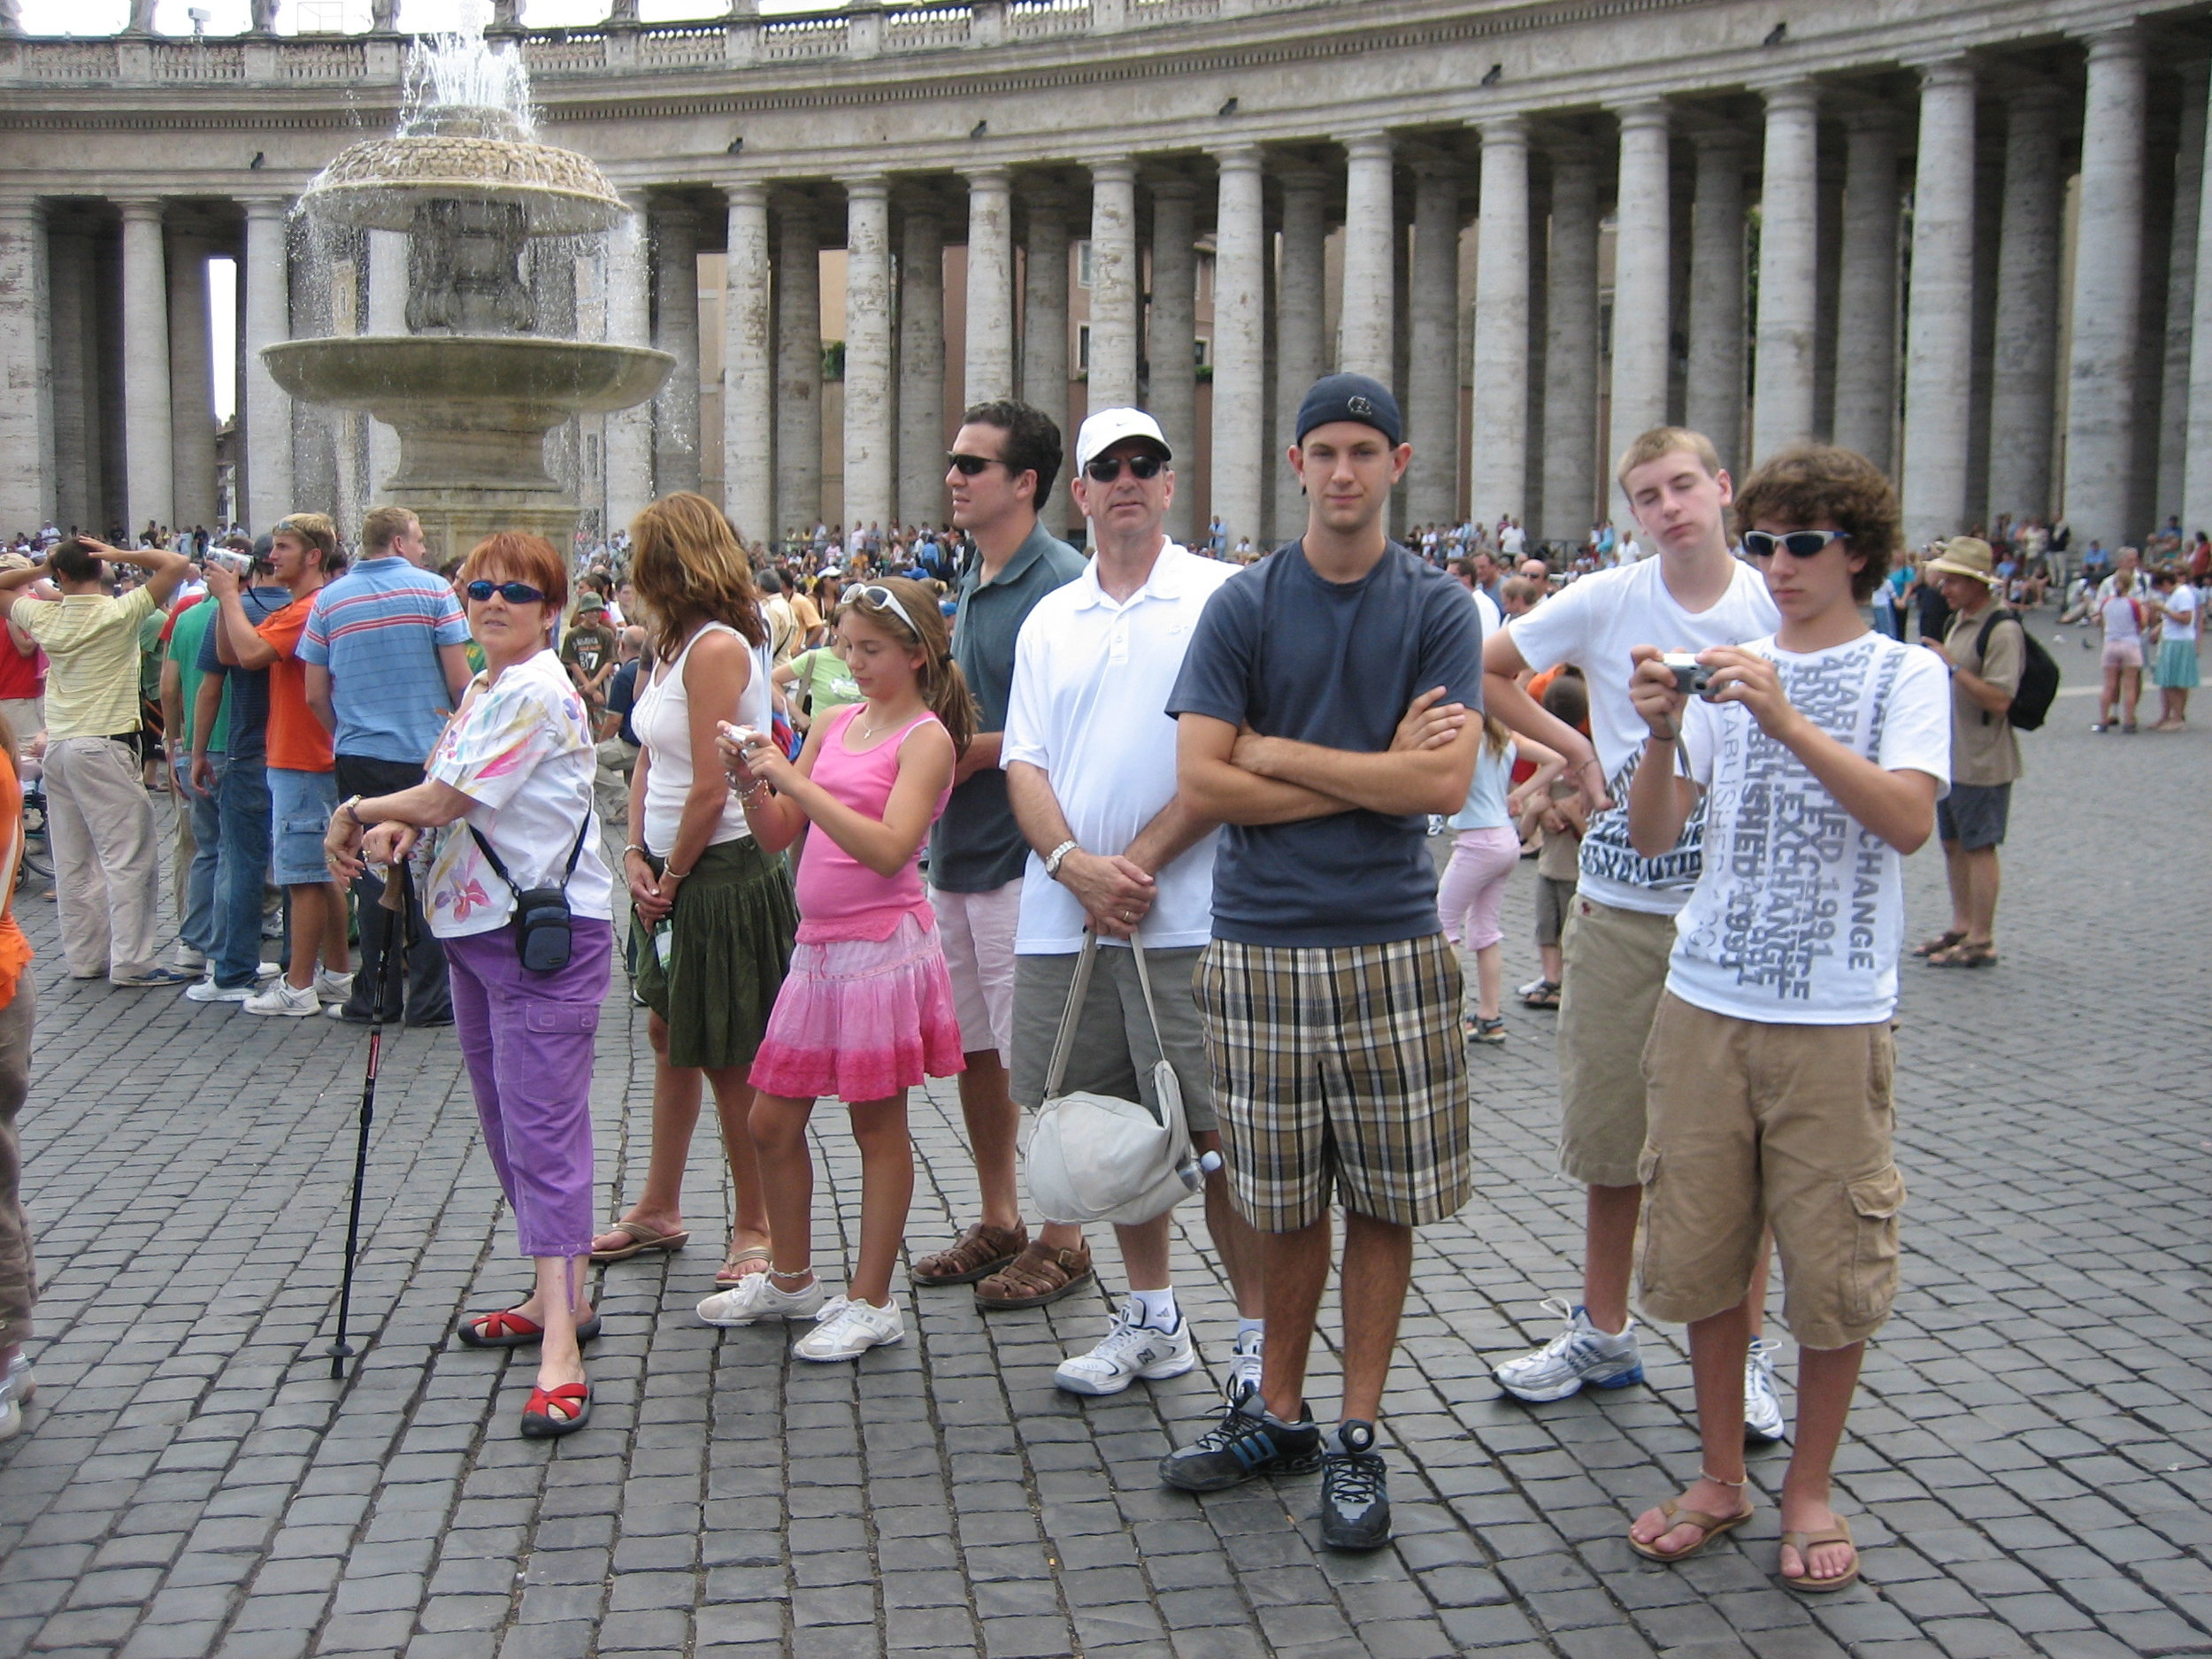 Young-Fusco Italian adventure - Vatican City